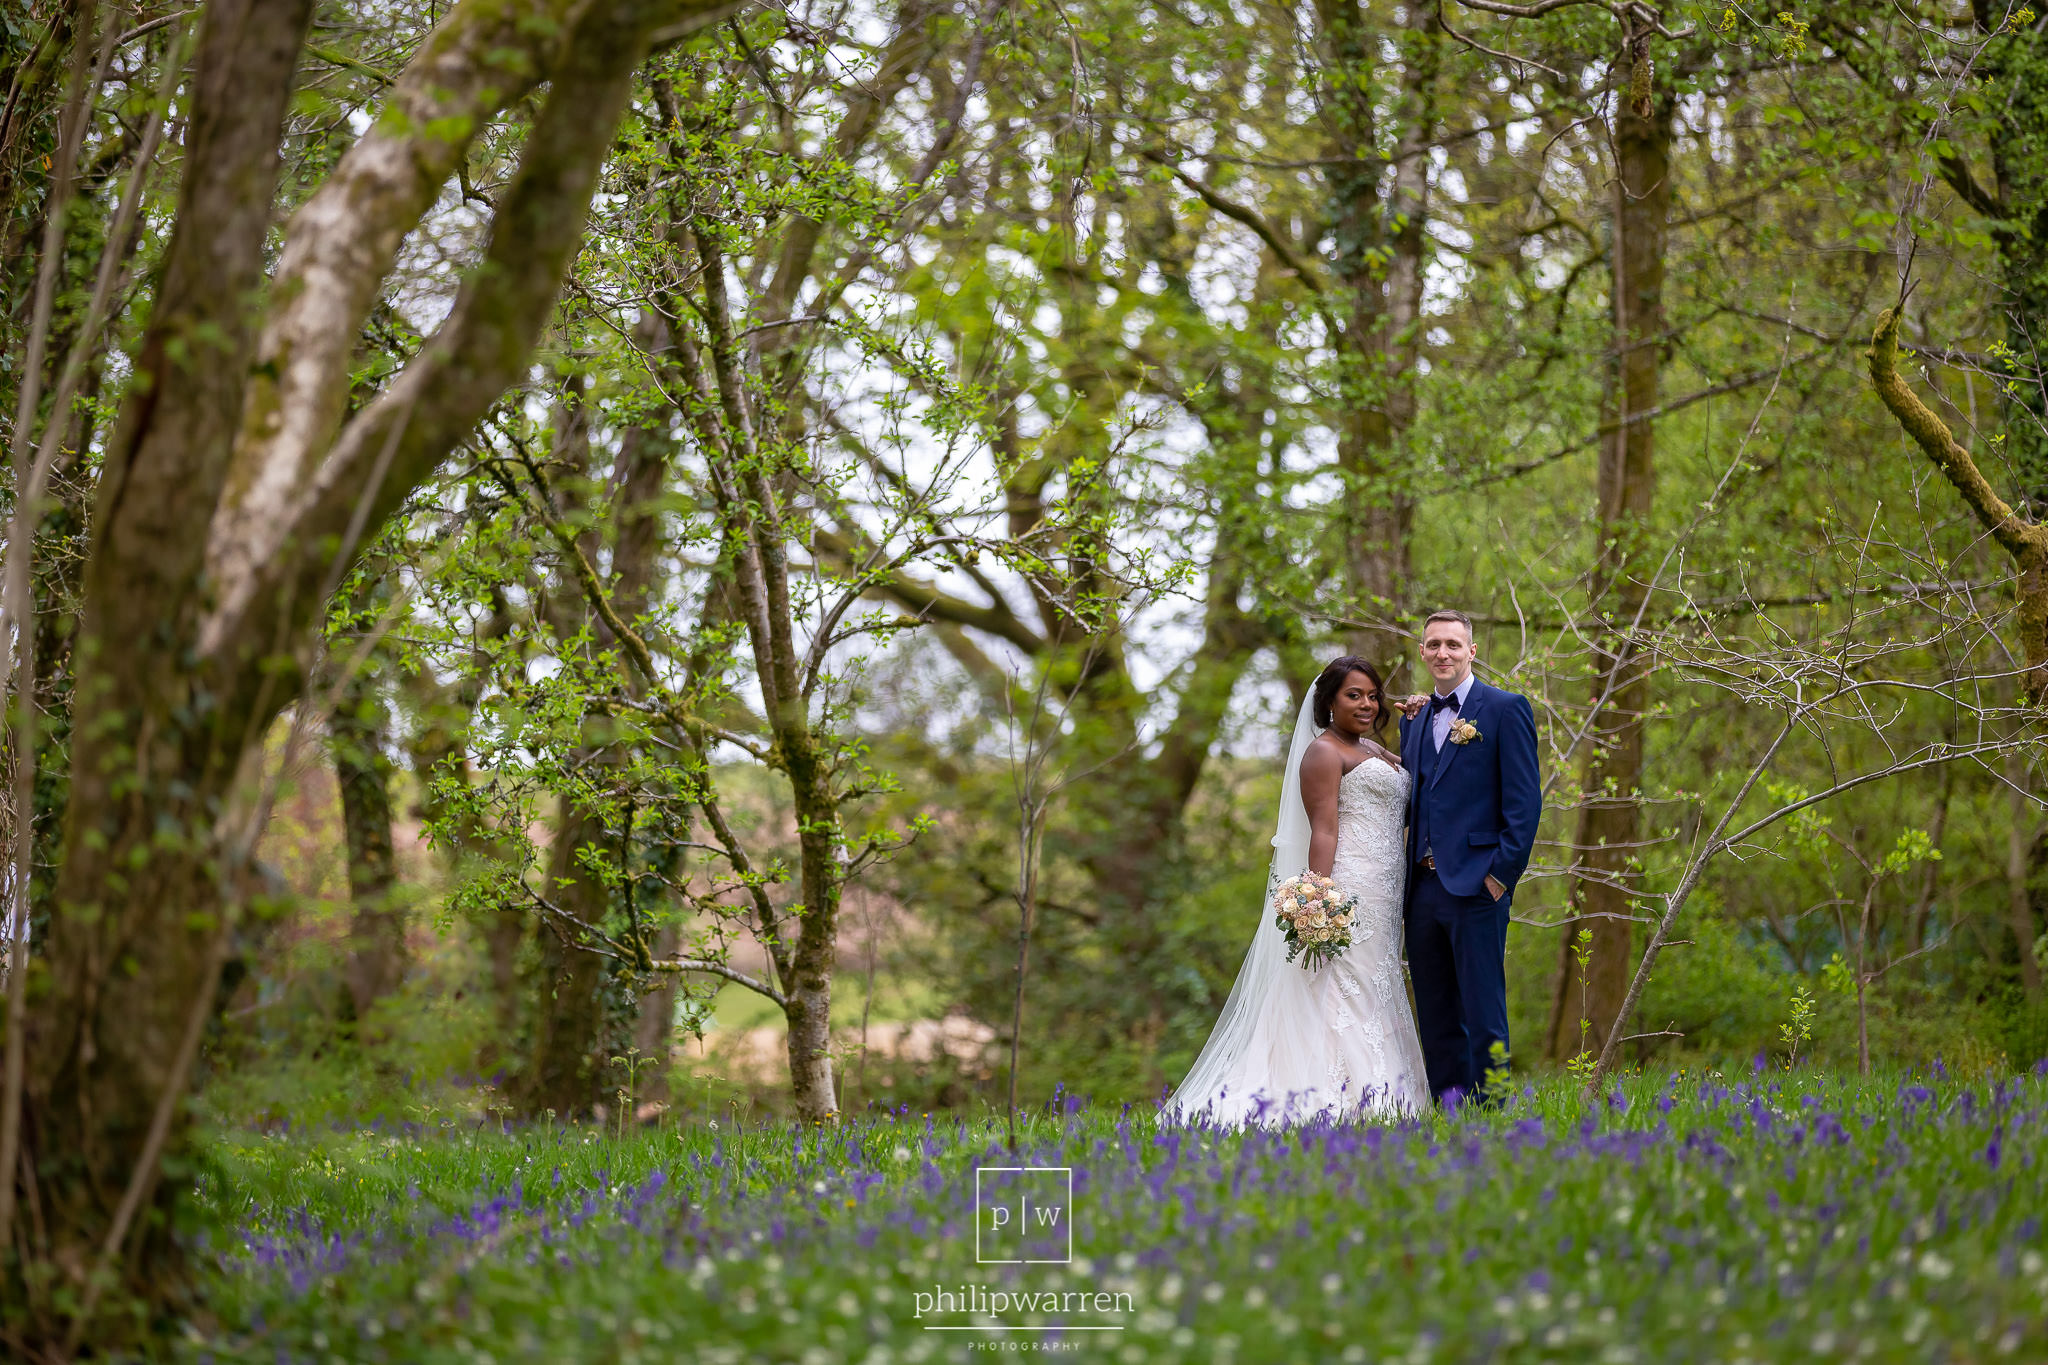 wedding photo in bluebells near bryngarw house hotel bridgend